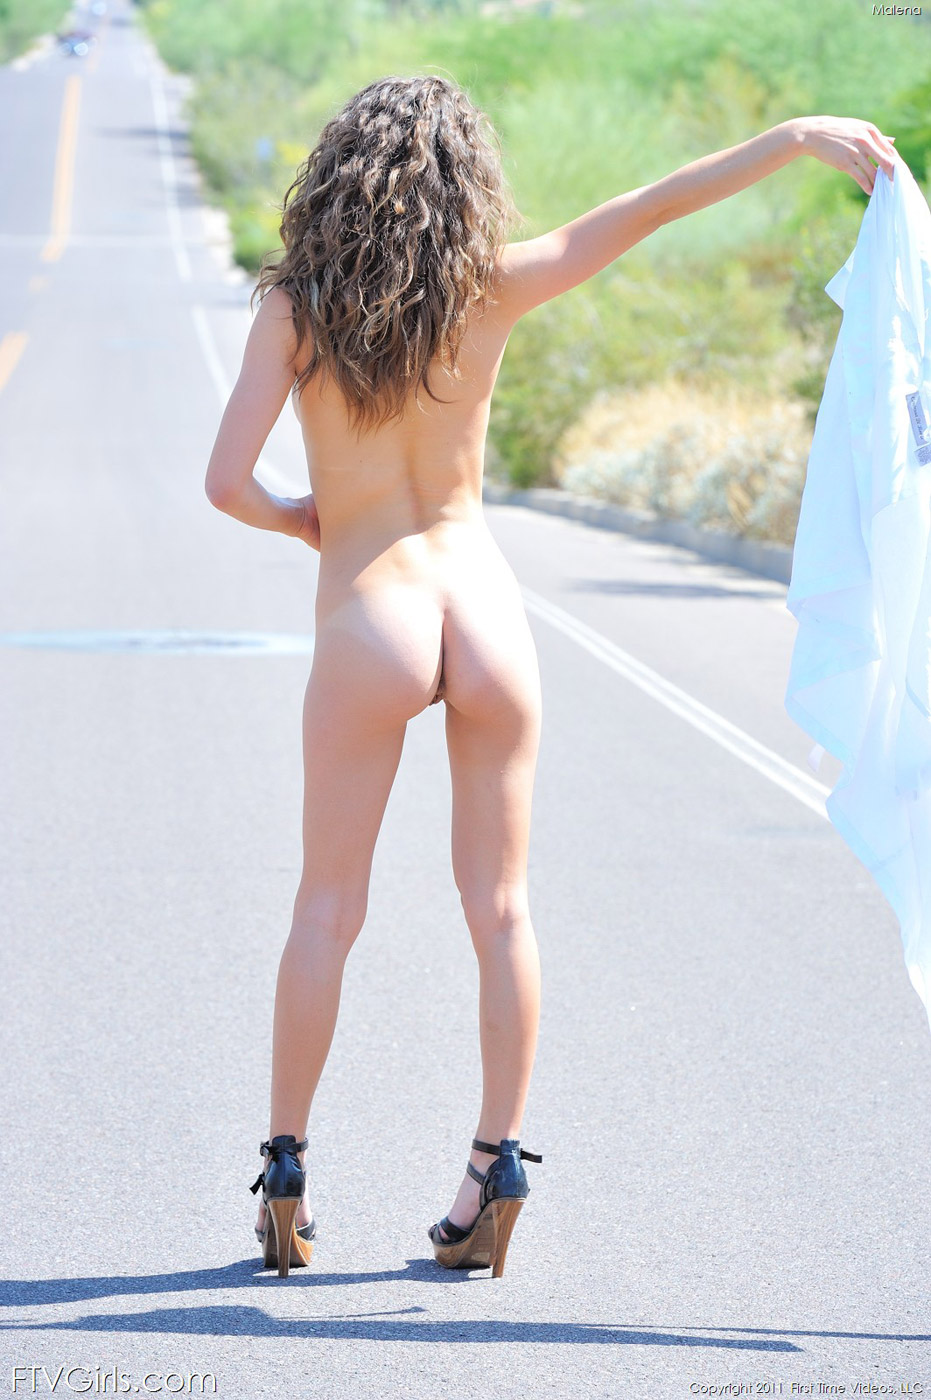 naked girls on road videos